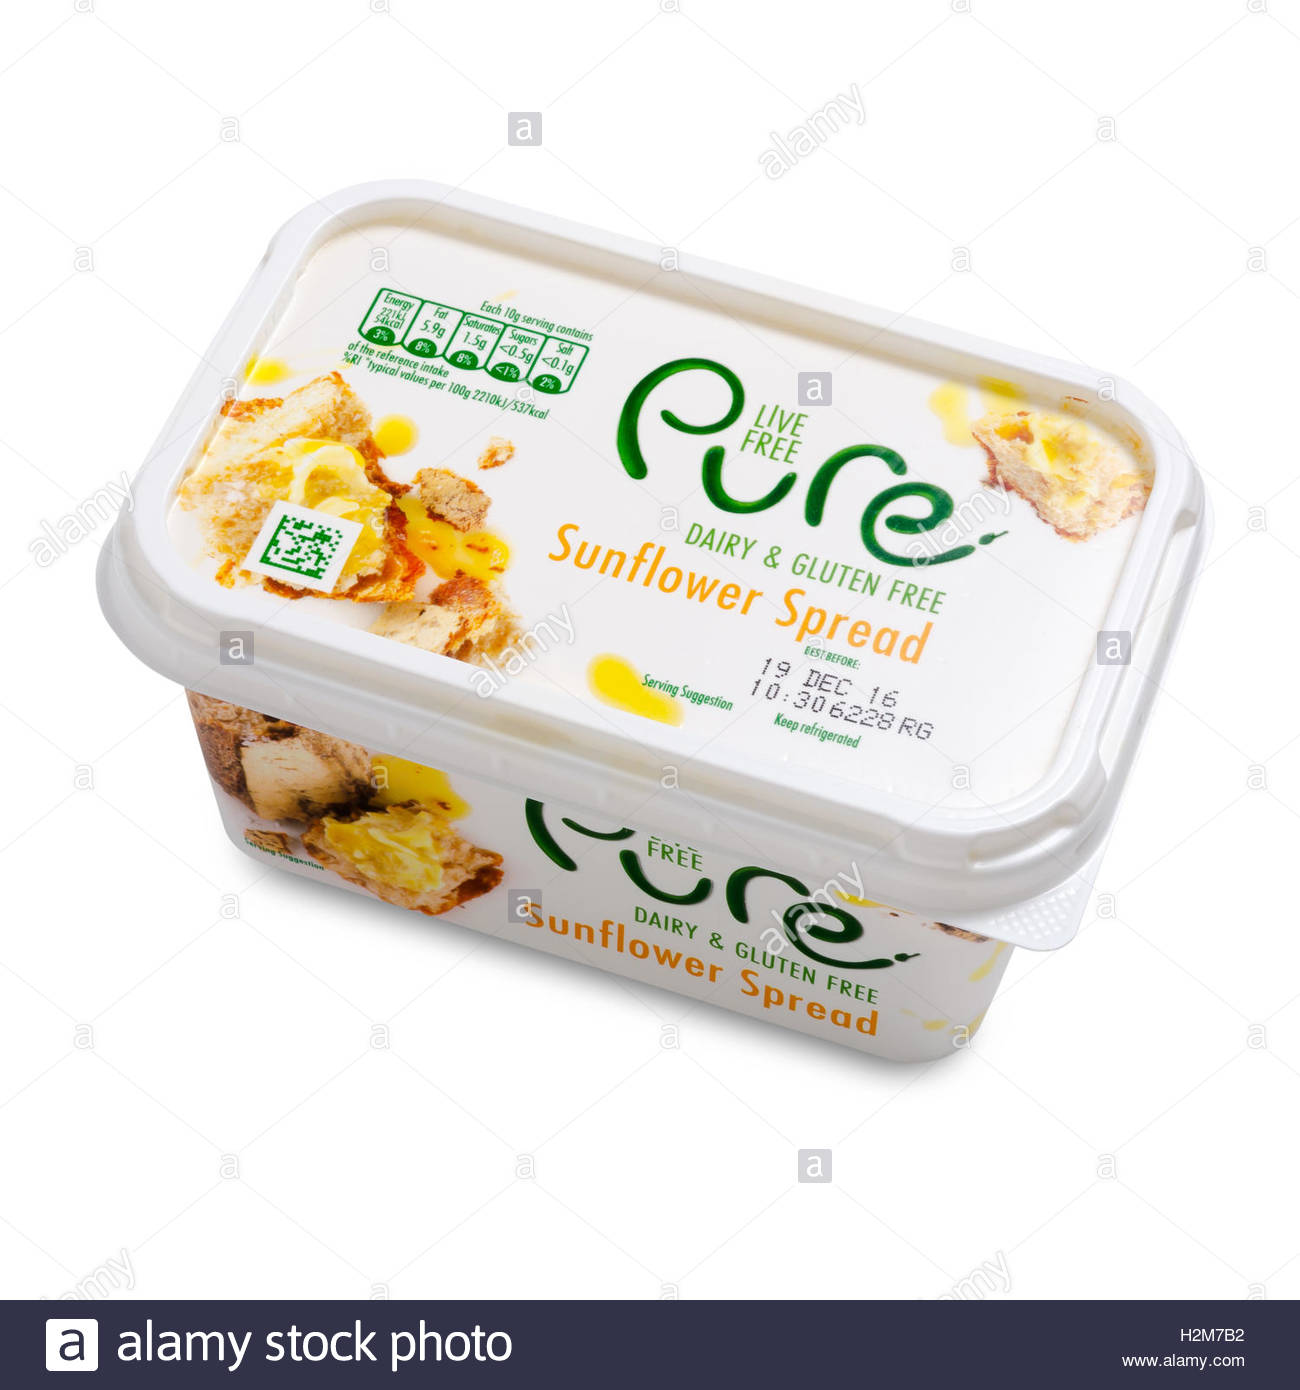 Tub of Pure Sunflower Spread. A gluten and dairy free alternative to butter, made by Ker - Stock Image